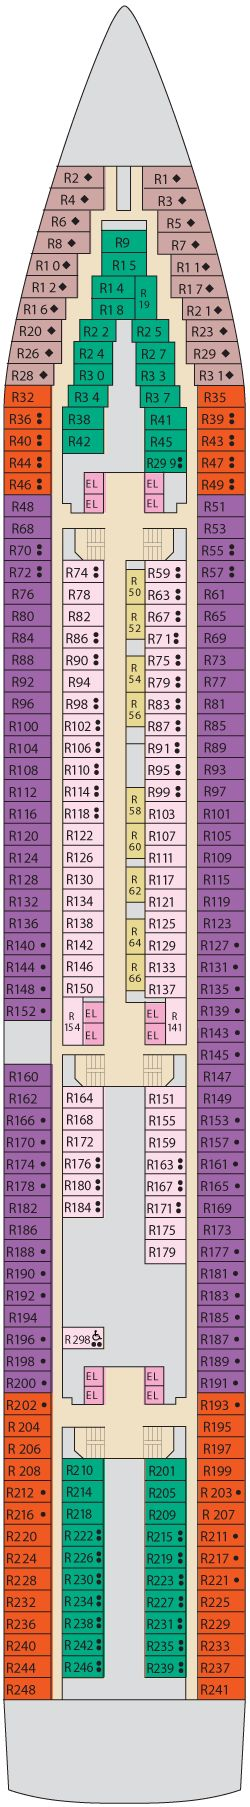 carnival elation deck layout - Google Search   GETTING READ TO SAIL!